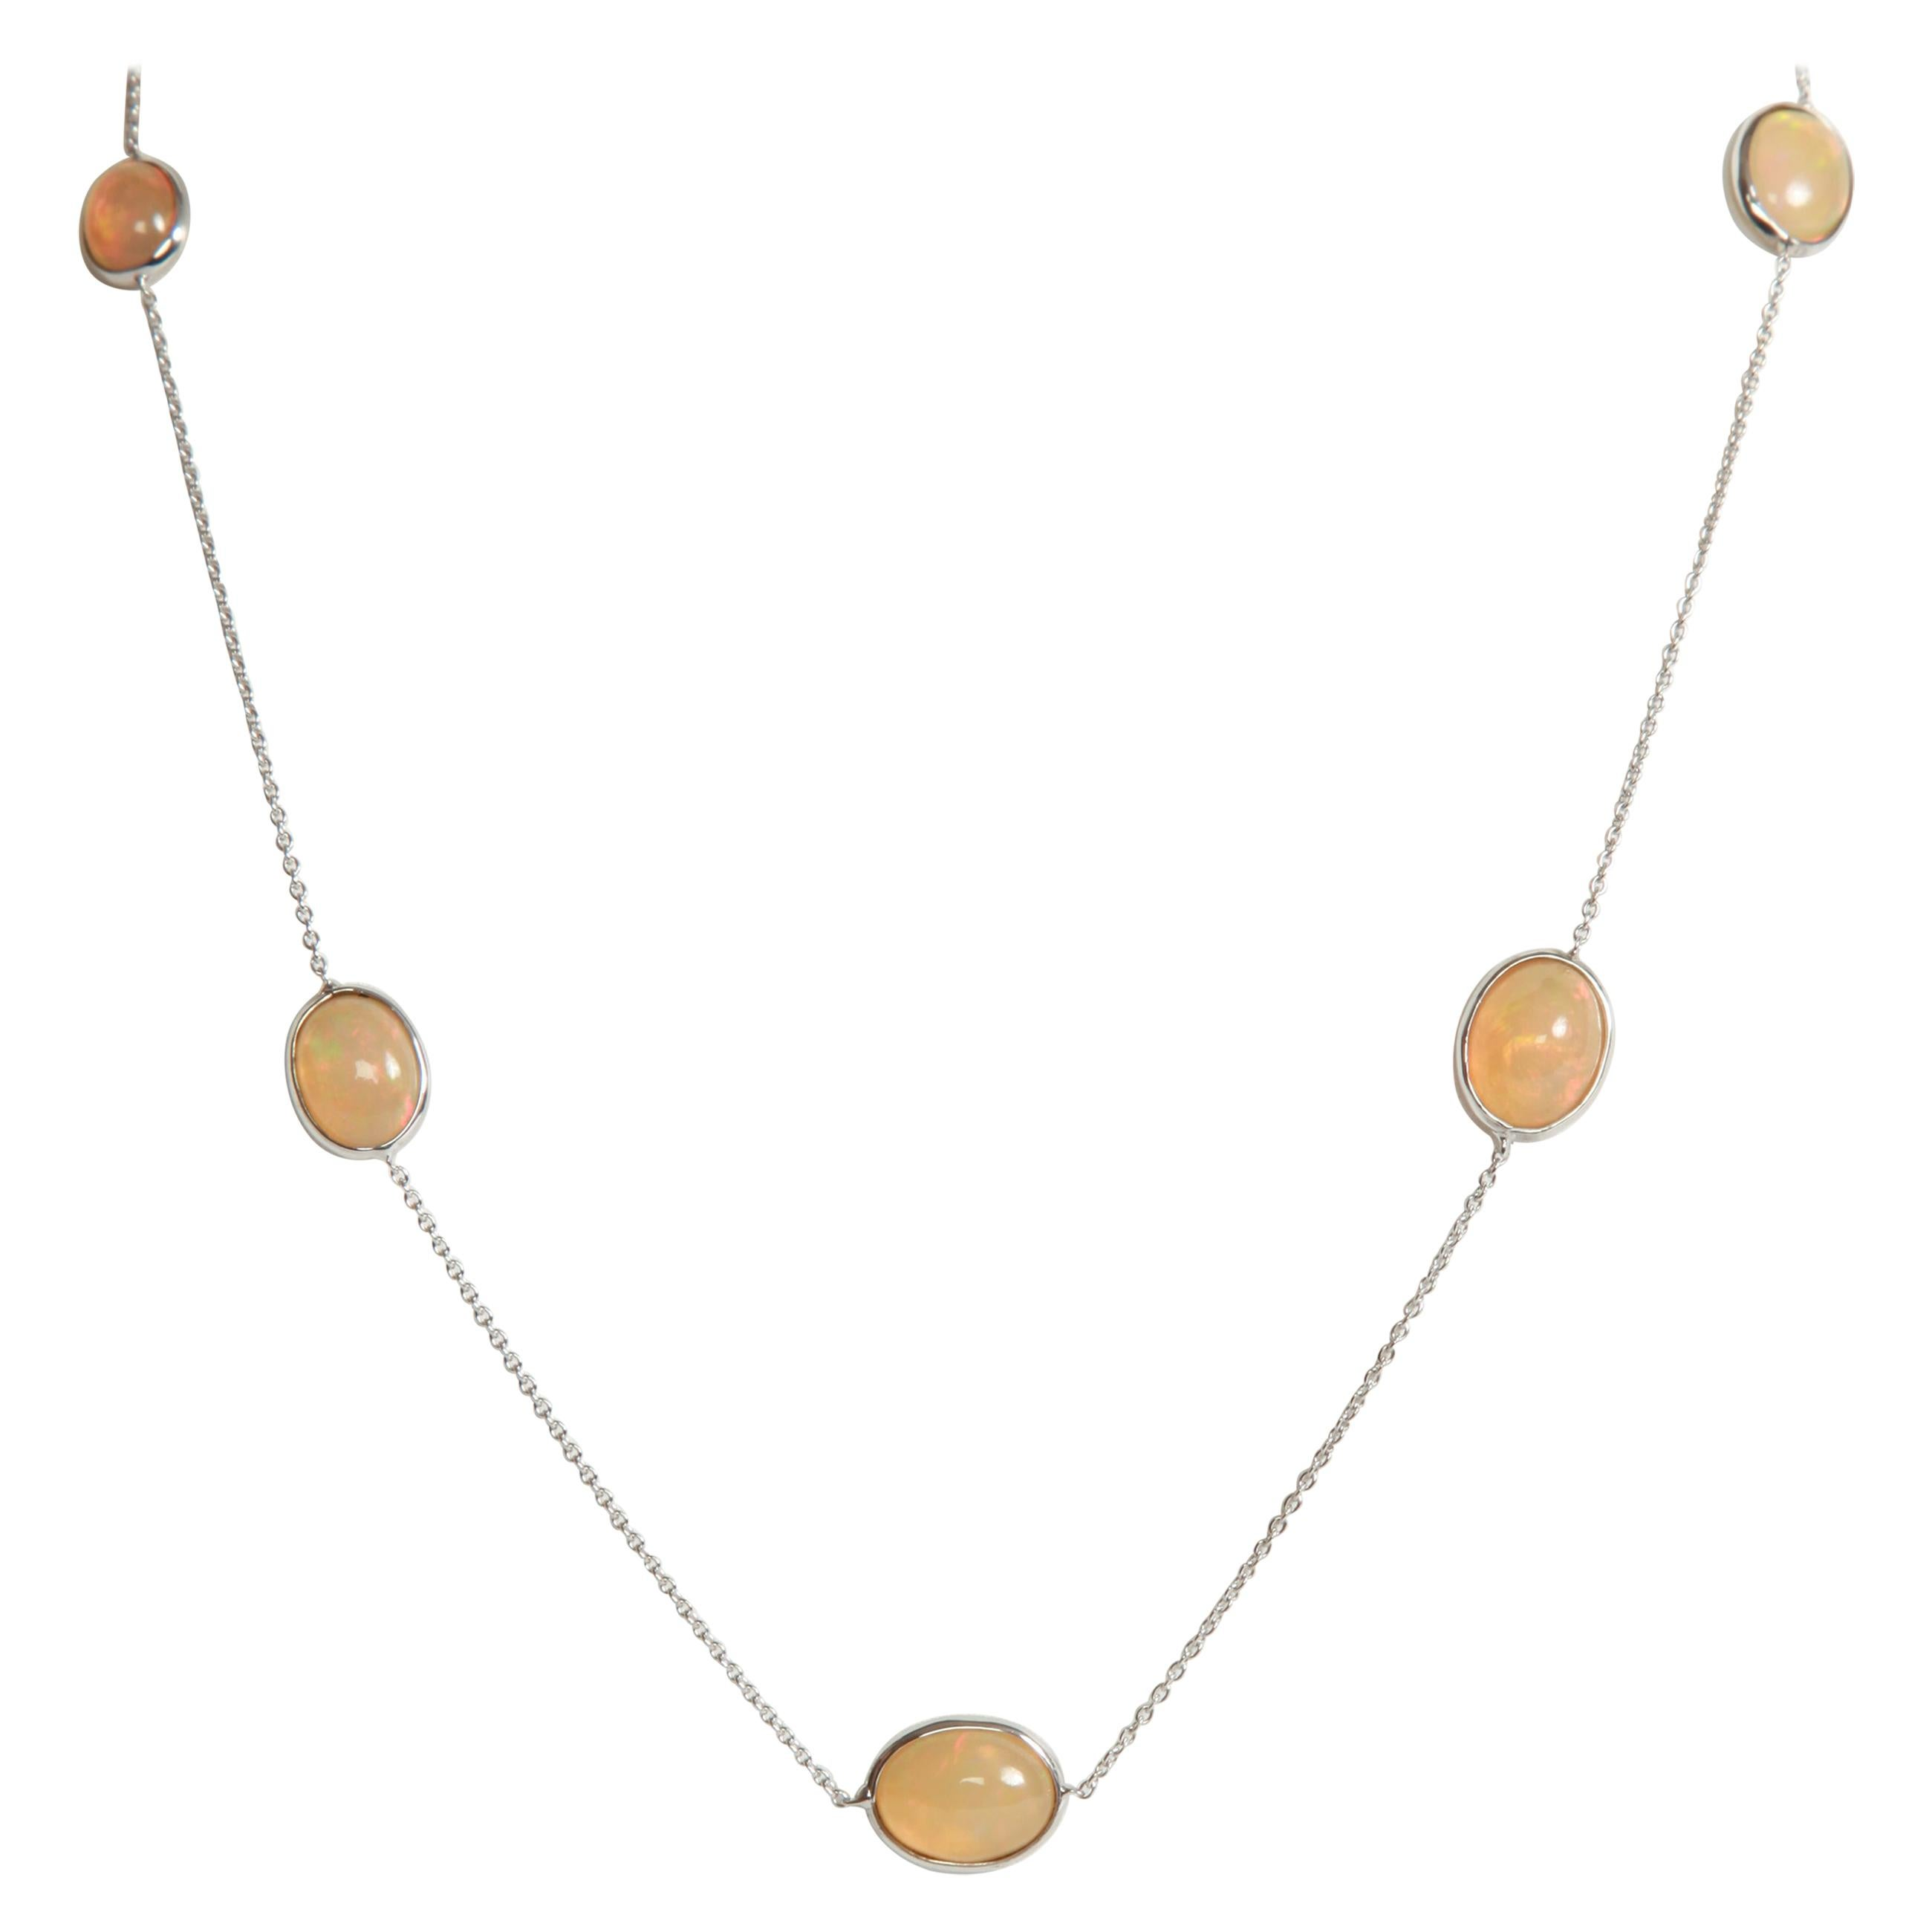 White Gold Chain Necklace Set with Opal Cabochons Created by Marion Jeantet